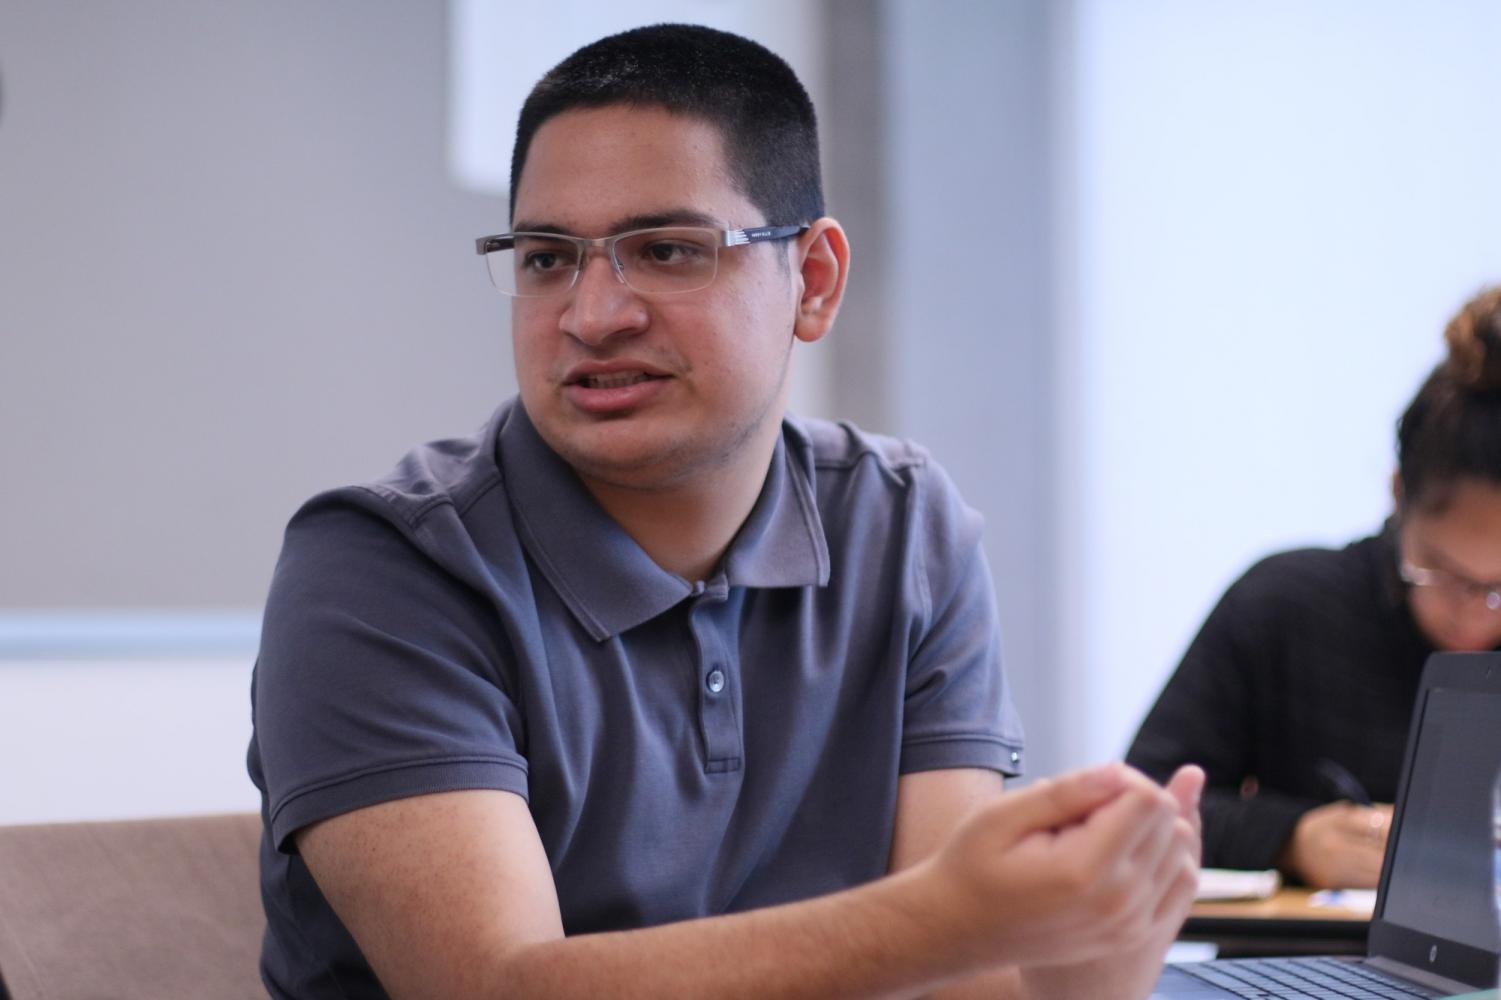 Michael Murillo, 20, was diagnosed with autism spectrum disorder, a learning disability ,and ADHD at the age of 3. Murillo is one of the tens of thousands of adults in America with ASD pursuing a post-secondary education. Photo credit: Rosemary Montalvo